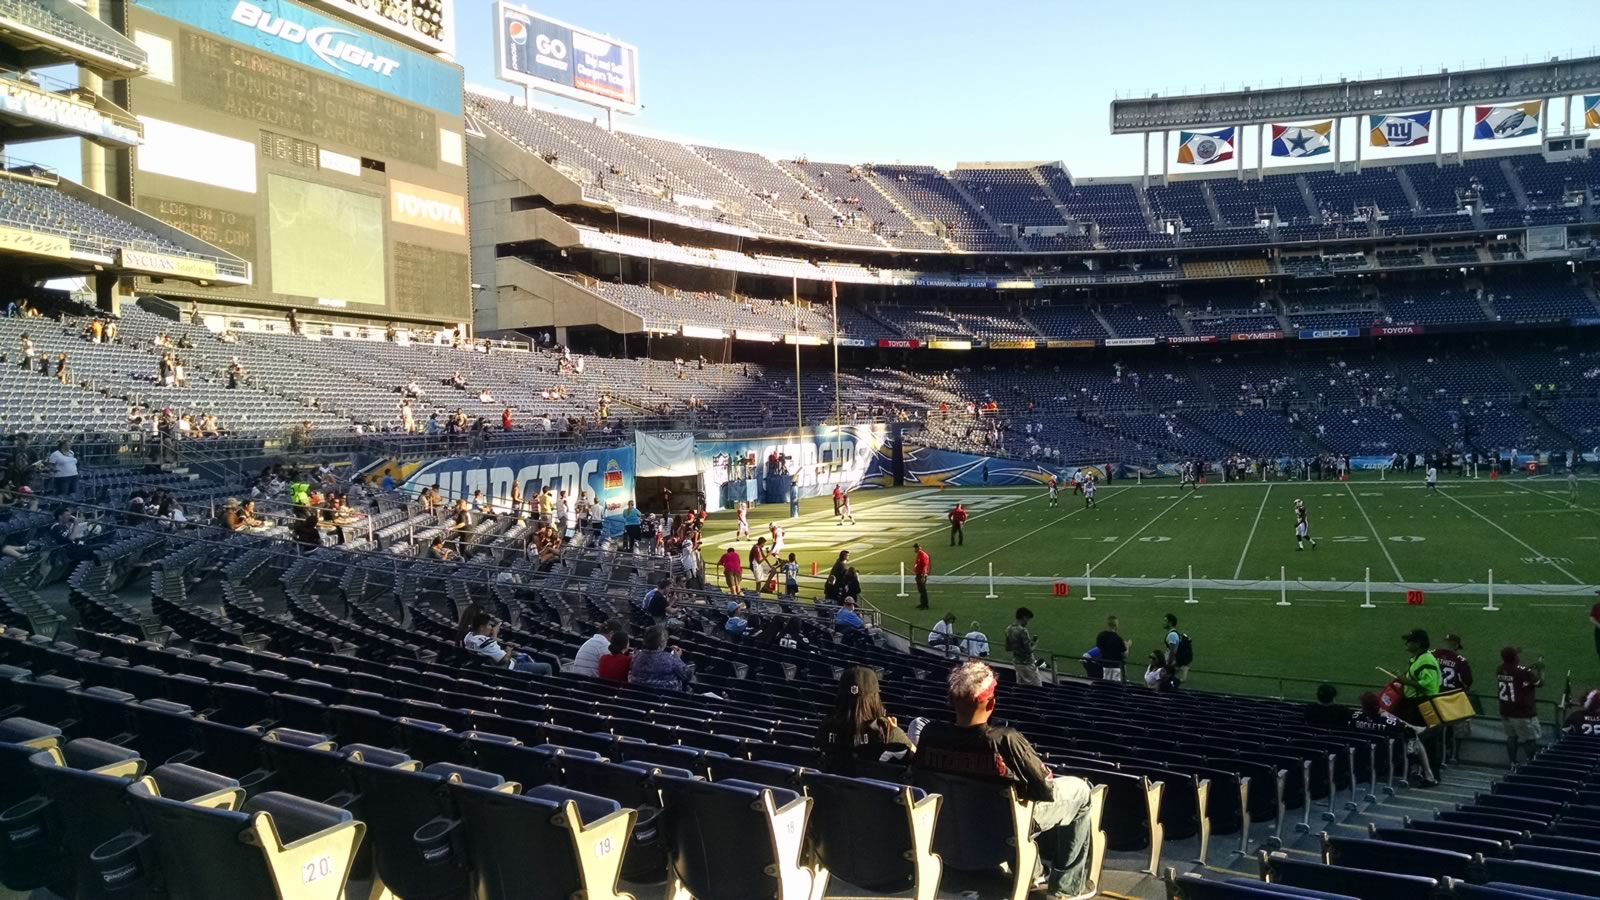 Seat View for Qualcomm Stadium Field 3, Row 22, Seat 3